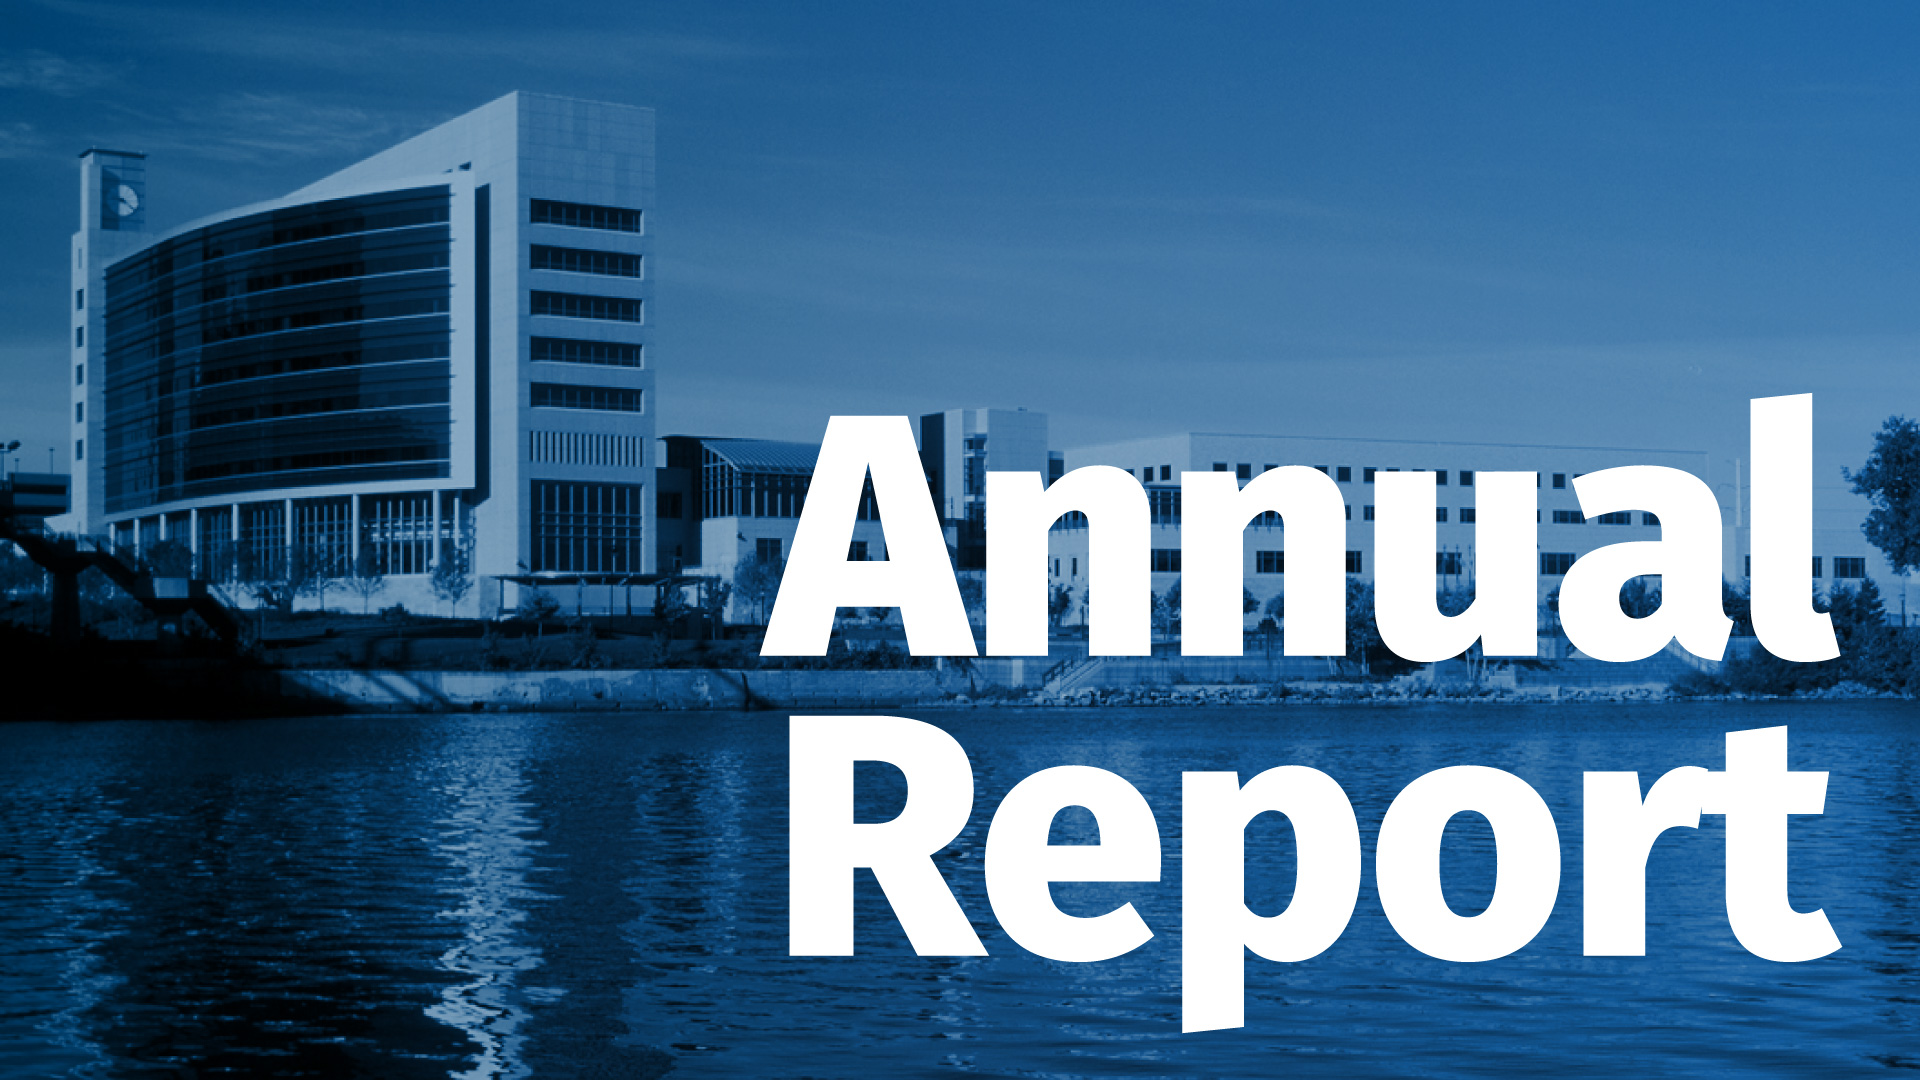 Annual Report key image